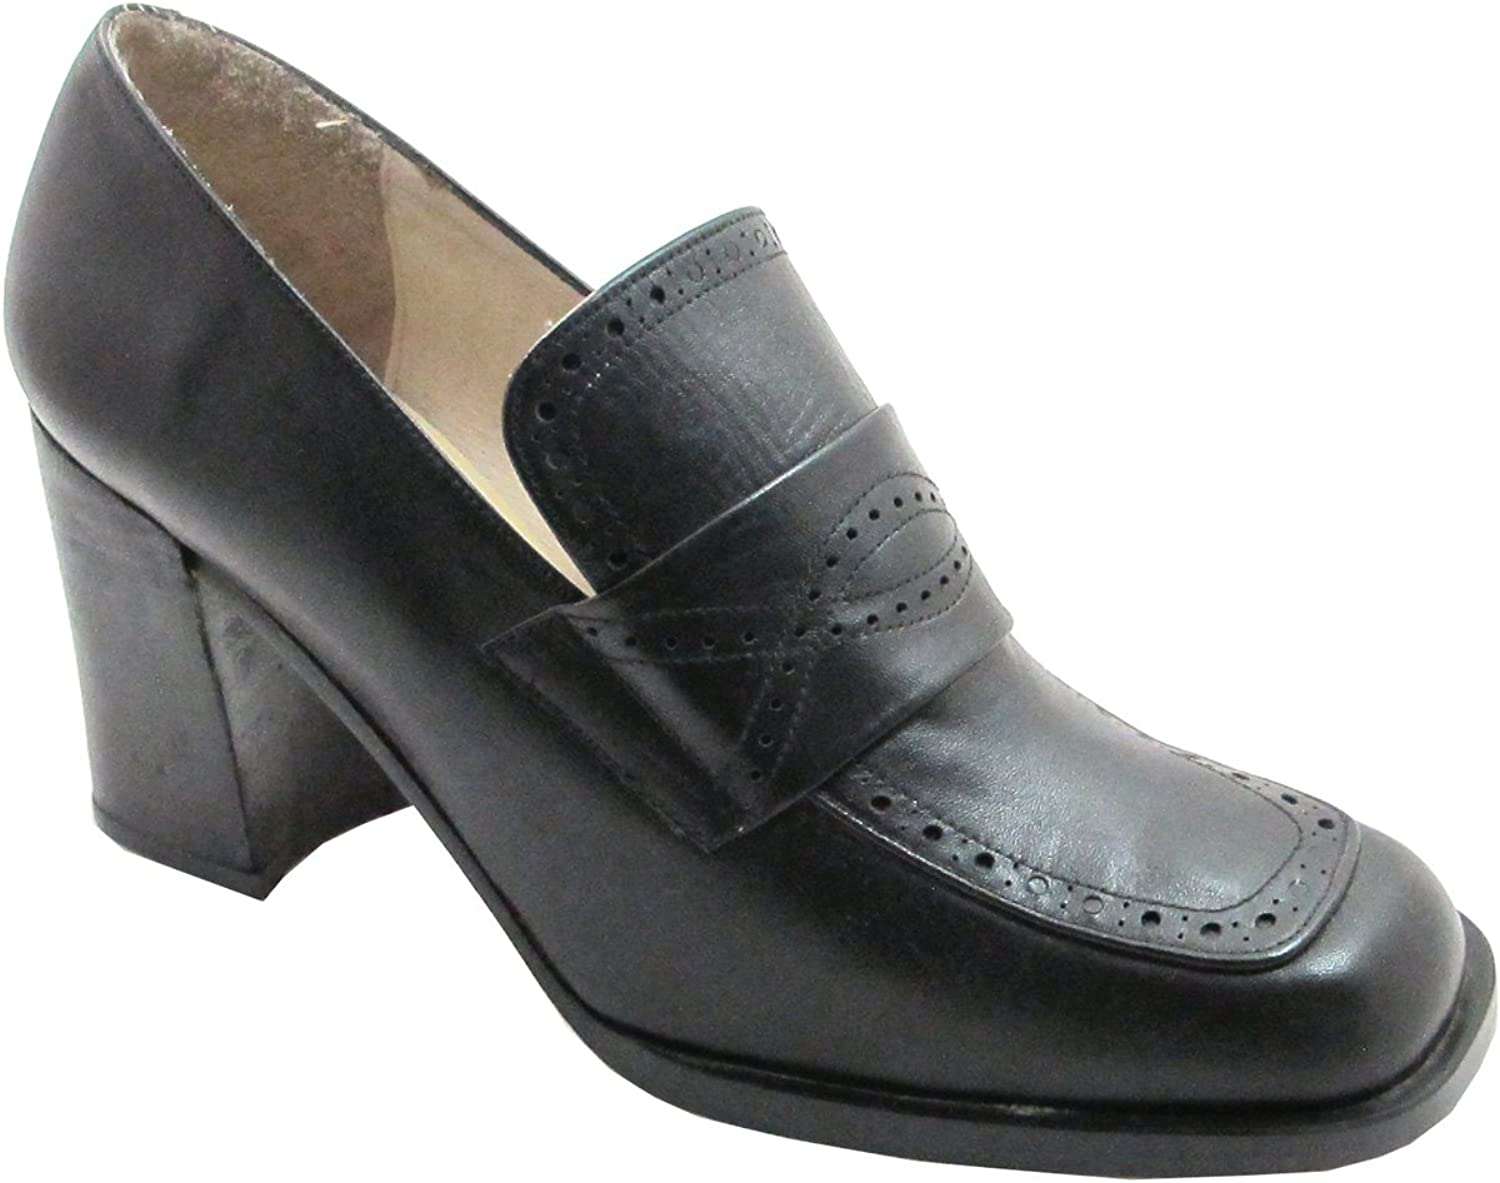 Spiral Women's Leather Square ToeAnd Heel shoes